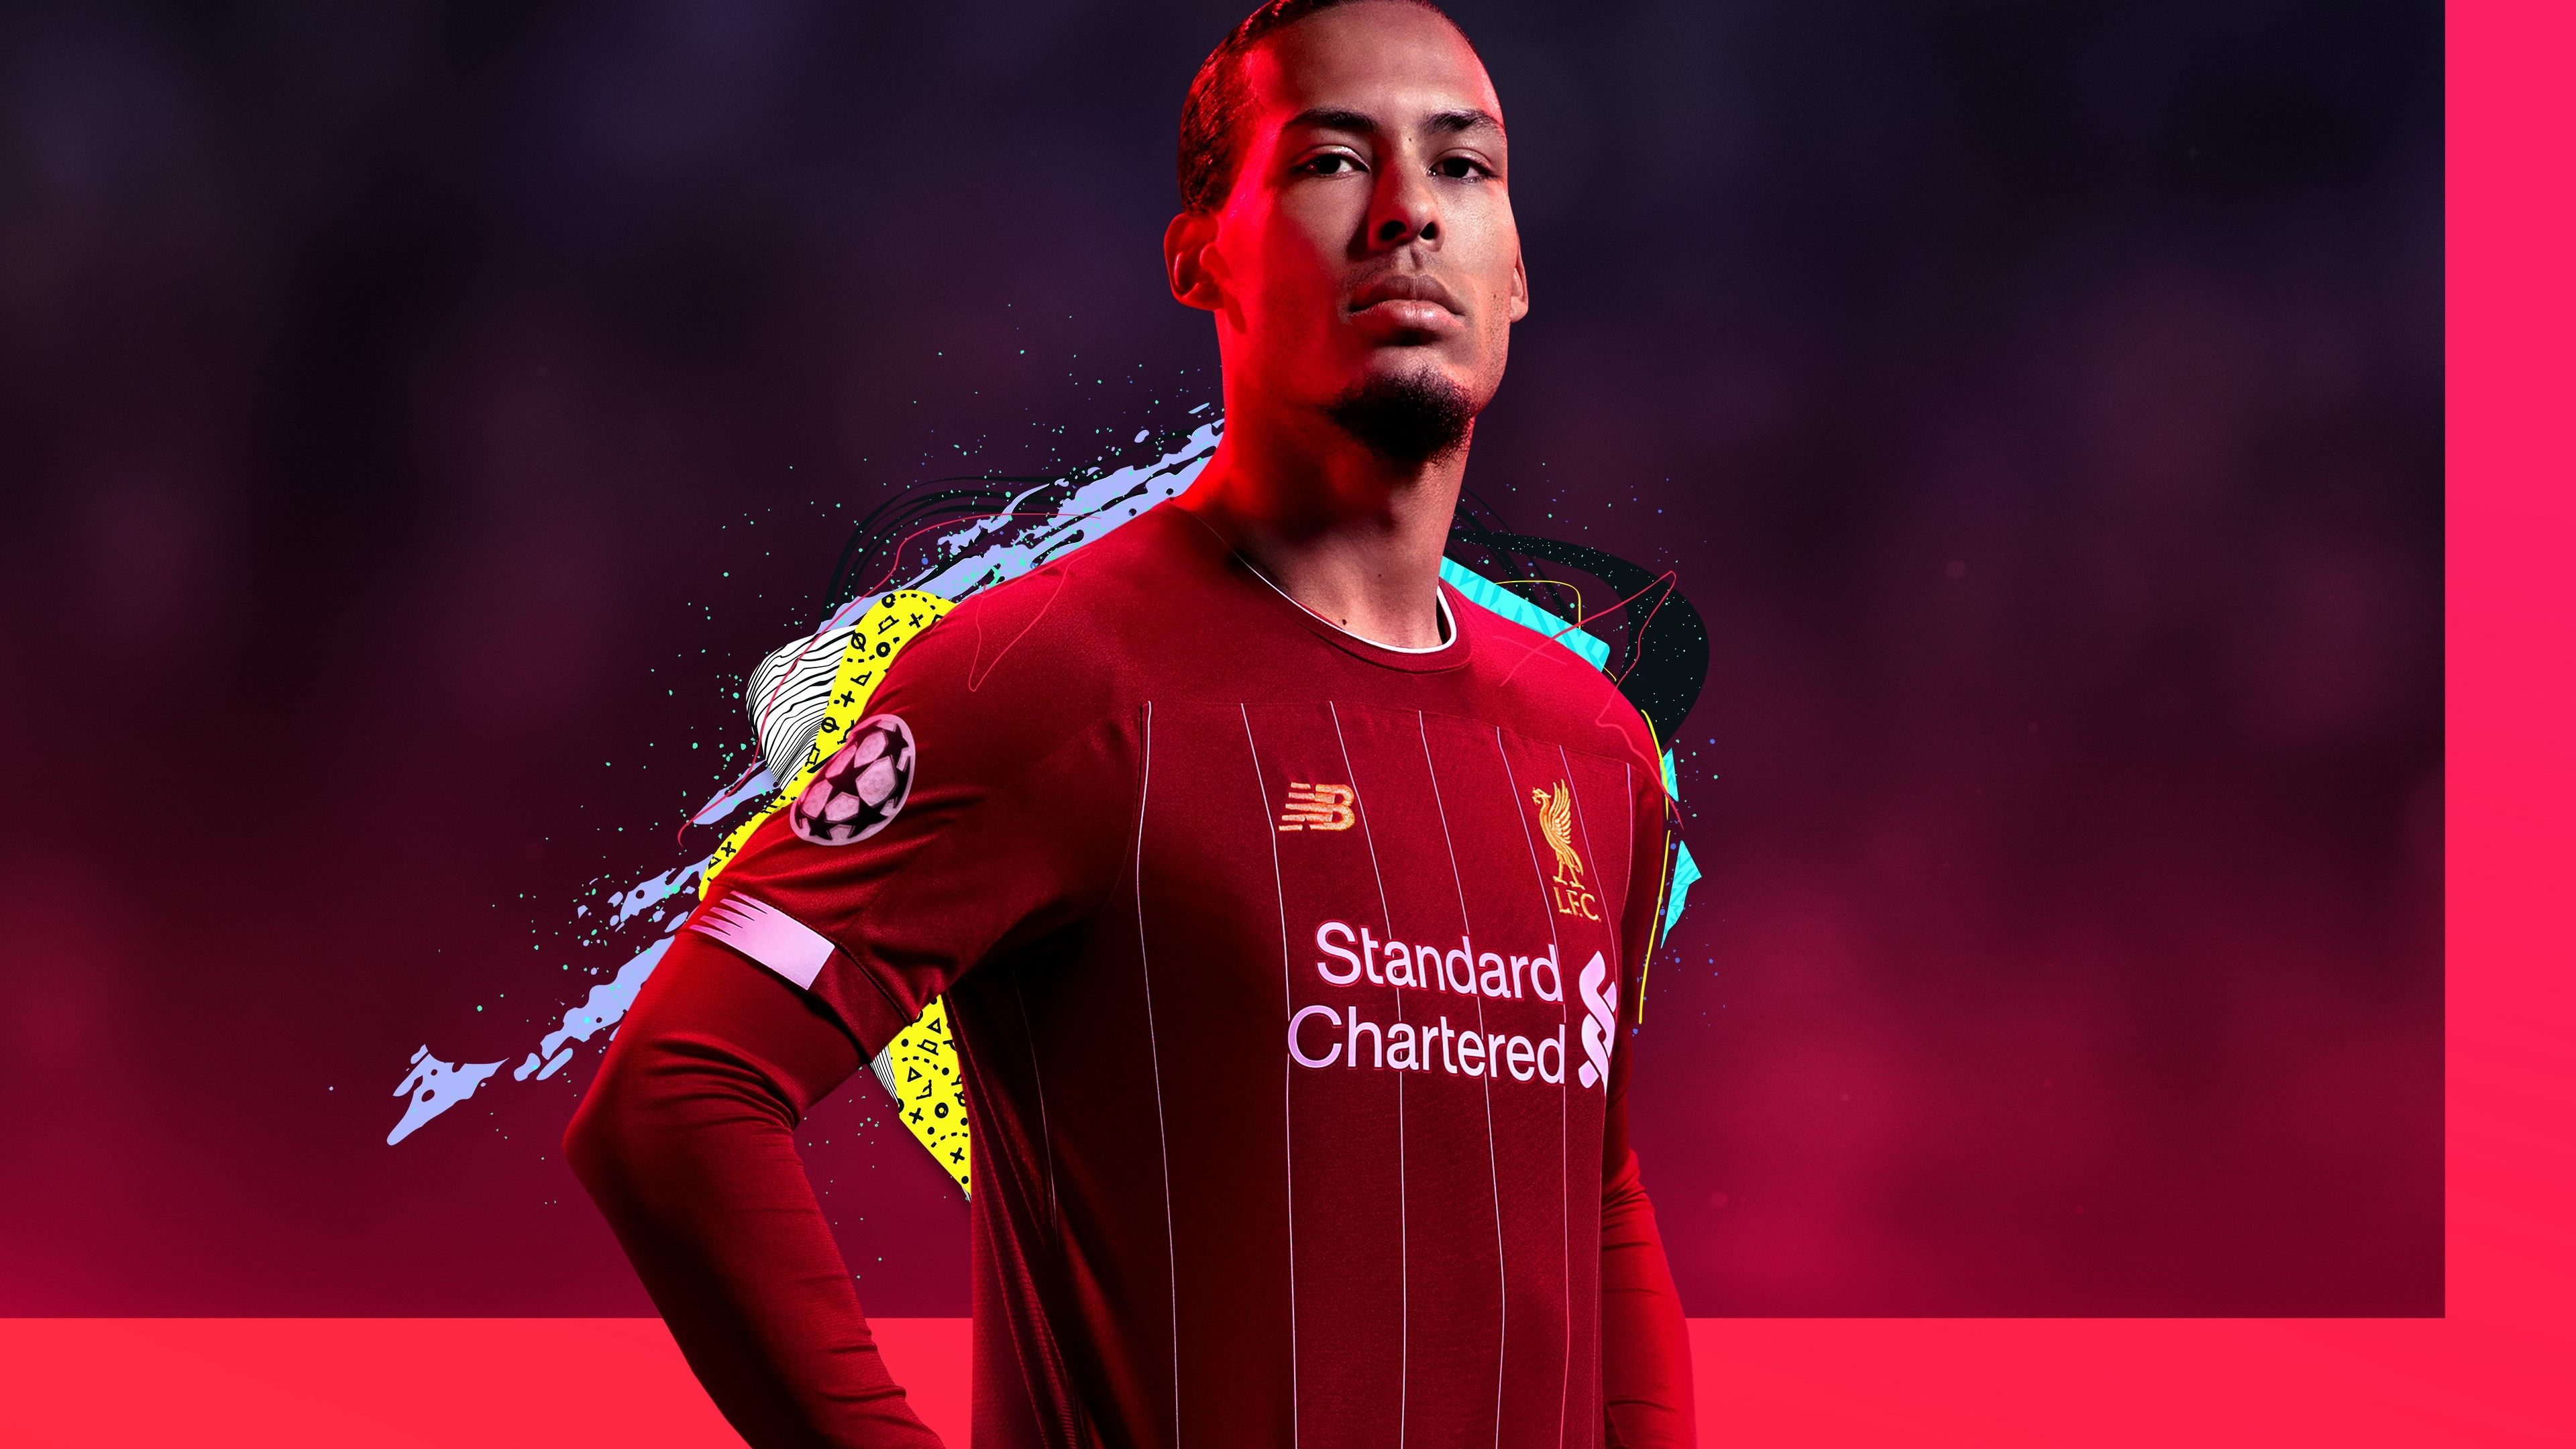 Virgil Van Dijk FIFA 20 Poster Wallpaper, HD Games 4K